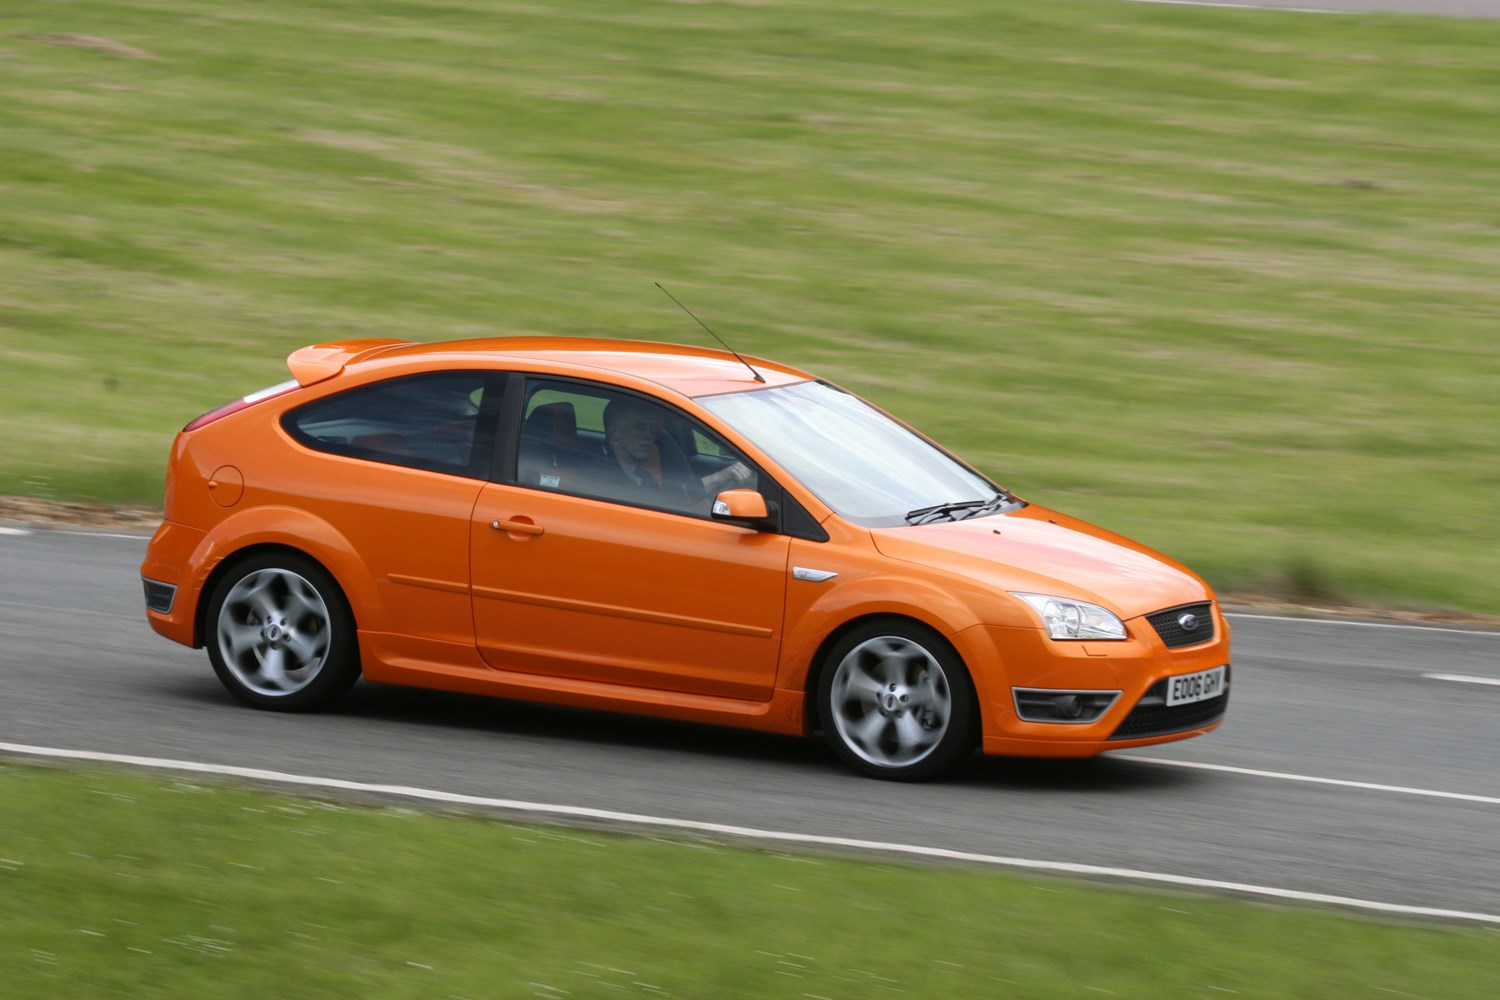 Used Ford Focus For Sale >> Ford Focus ST (2006 - 2010) Features, Equipment and Accessories | Parkers